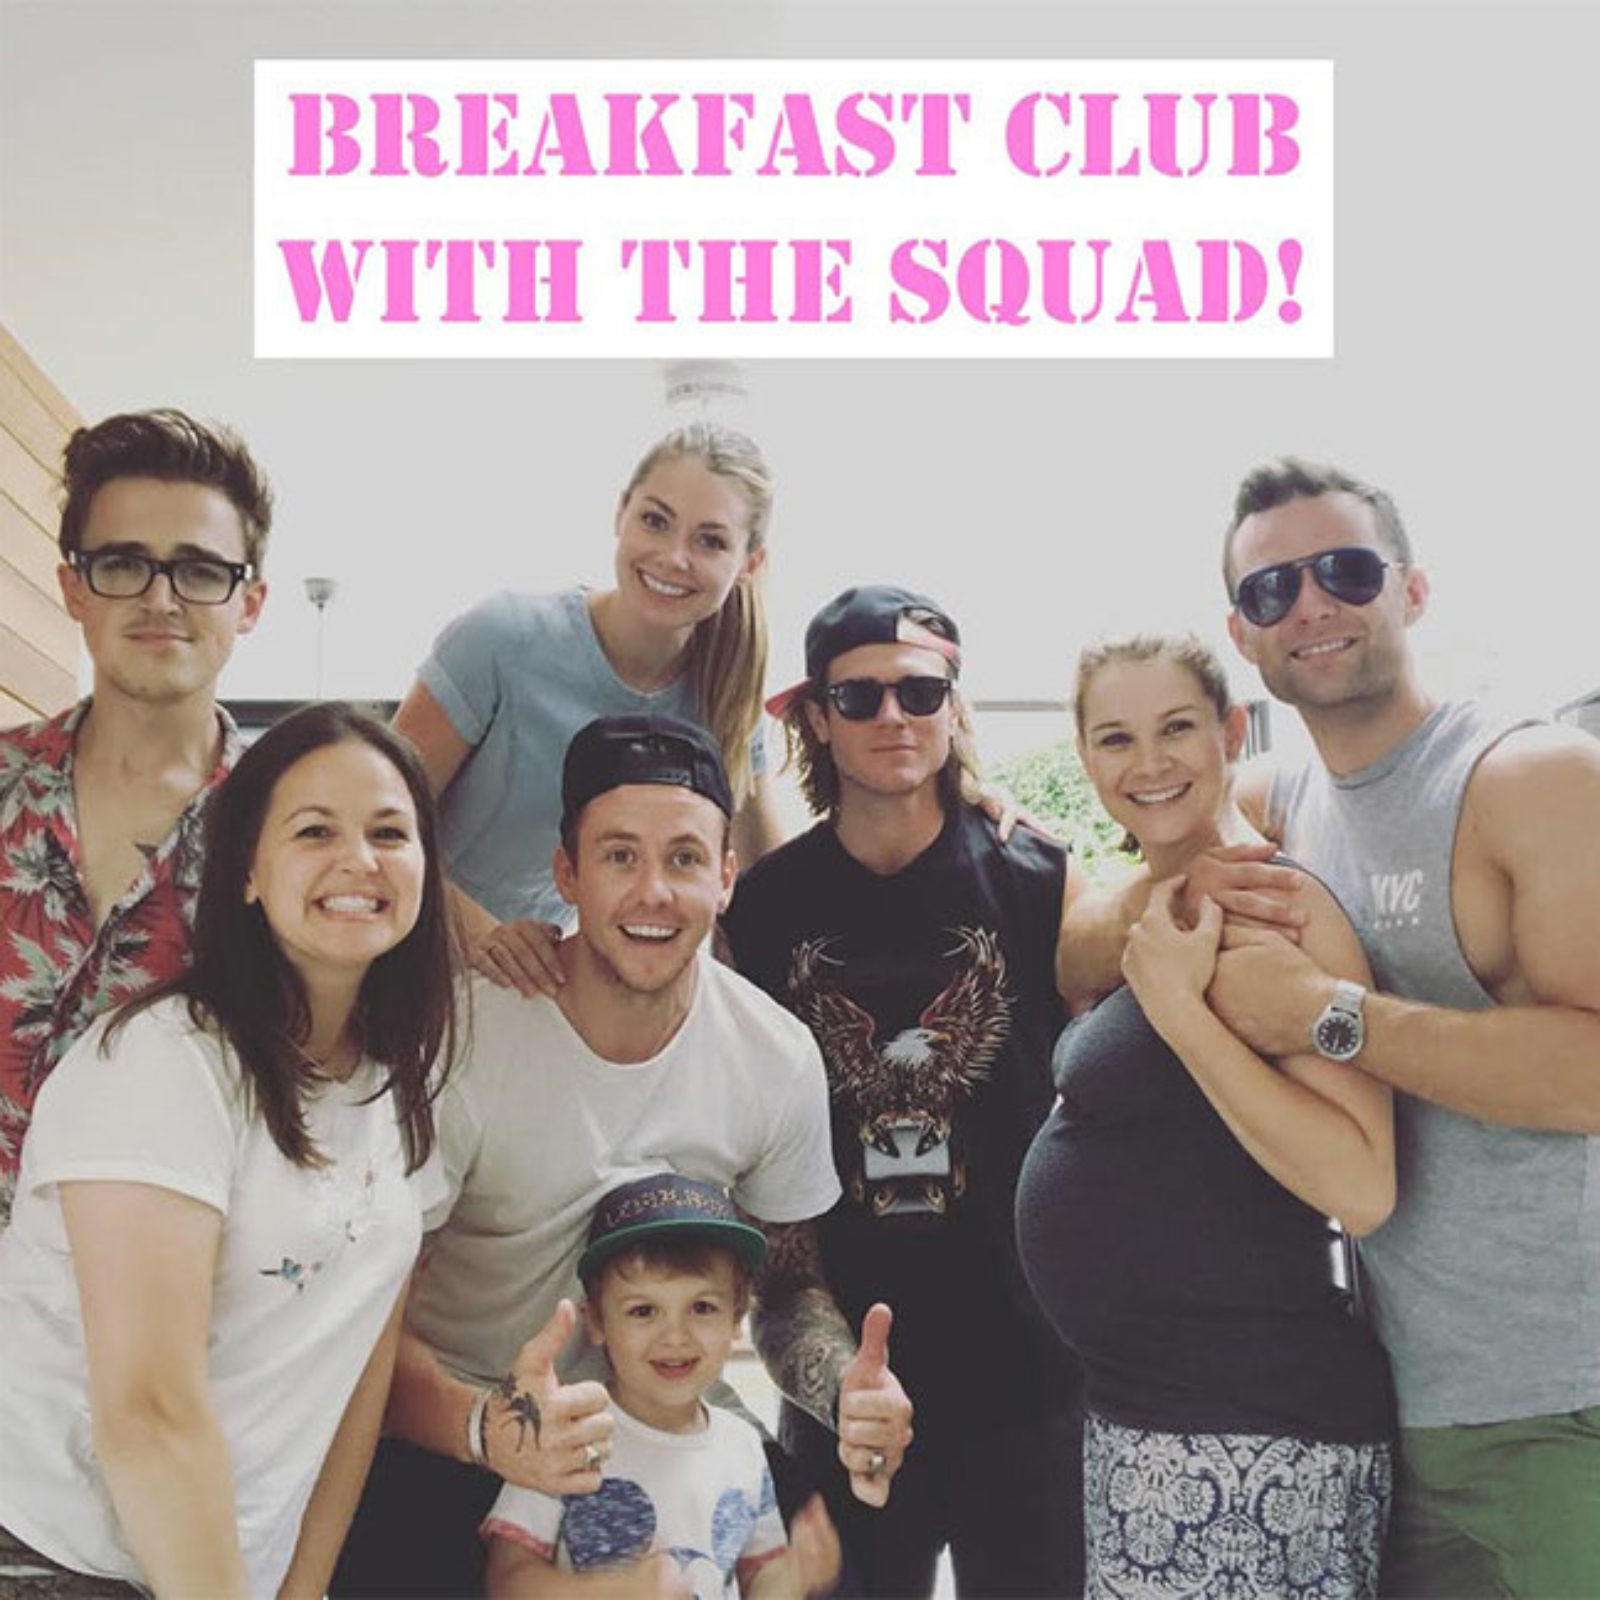 Breakfast club, Wimbledon, and a series of book launches!